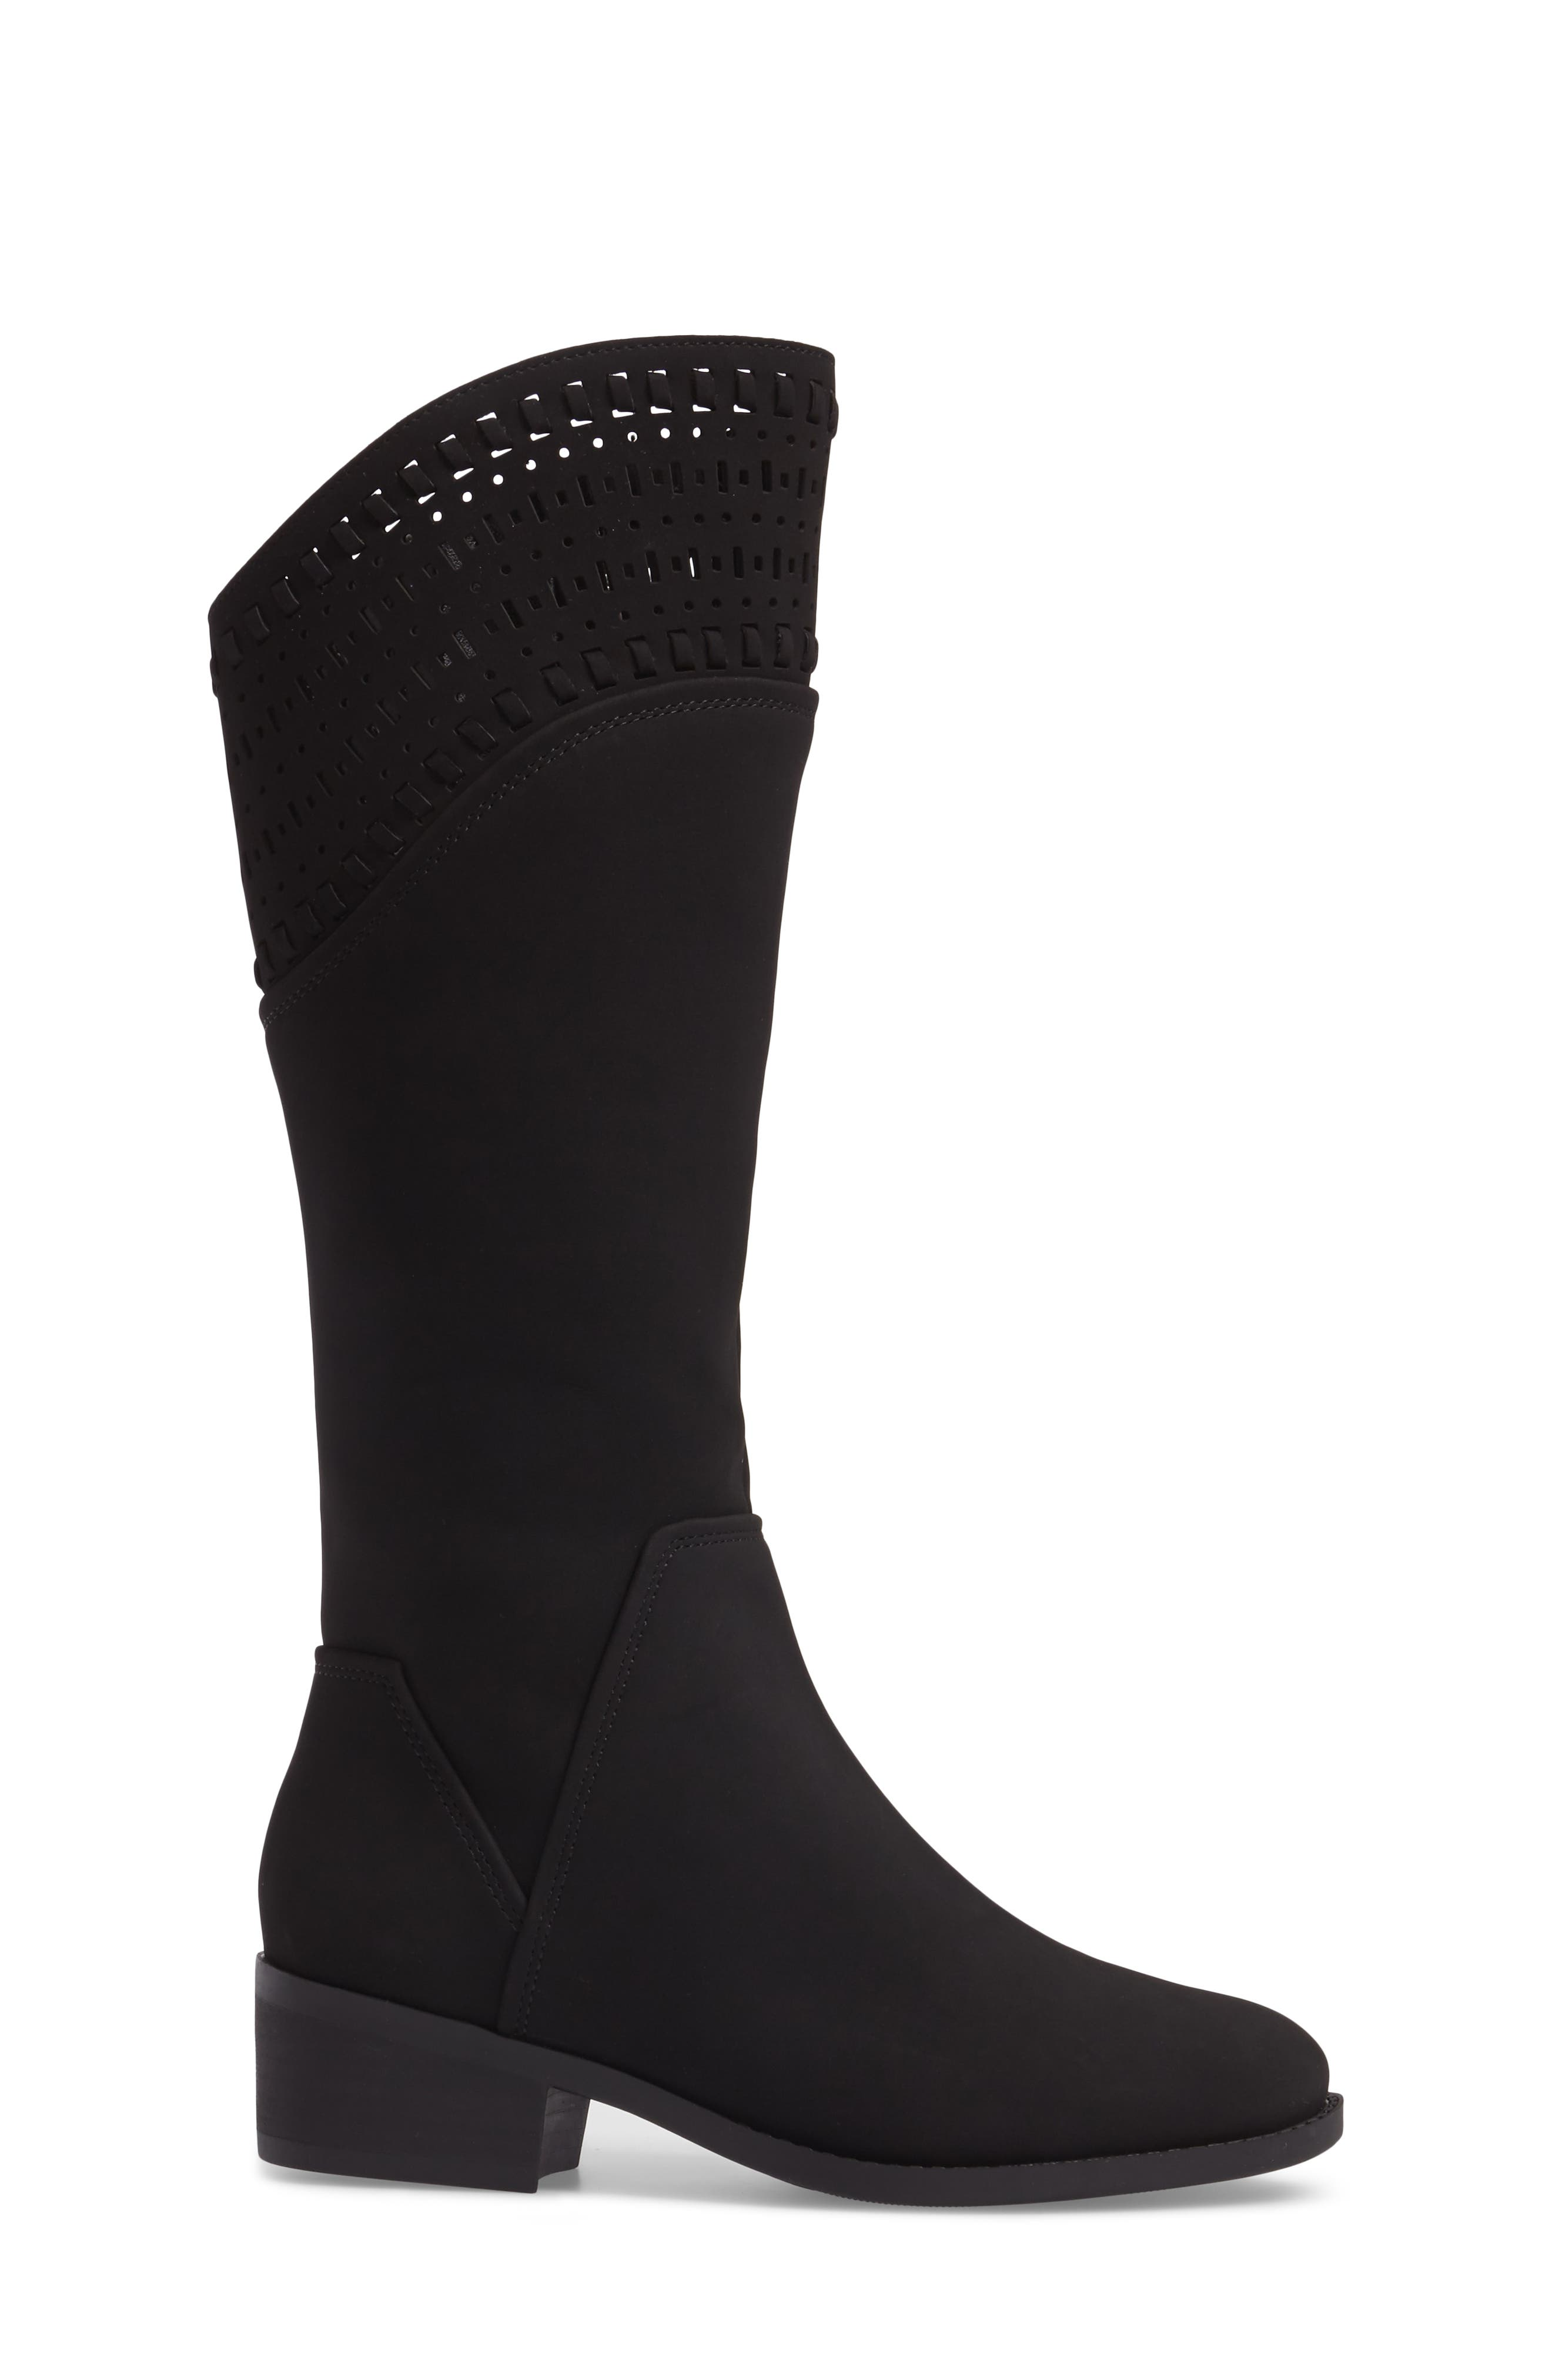 Blysse Woven Tall Boot,                             Alternate thumbnail 3, color,                             Black Suede